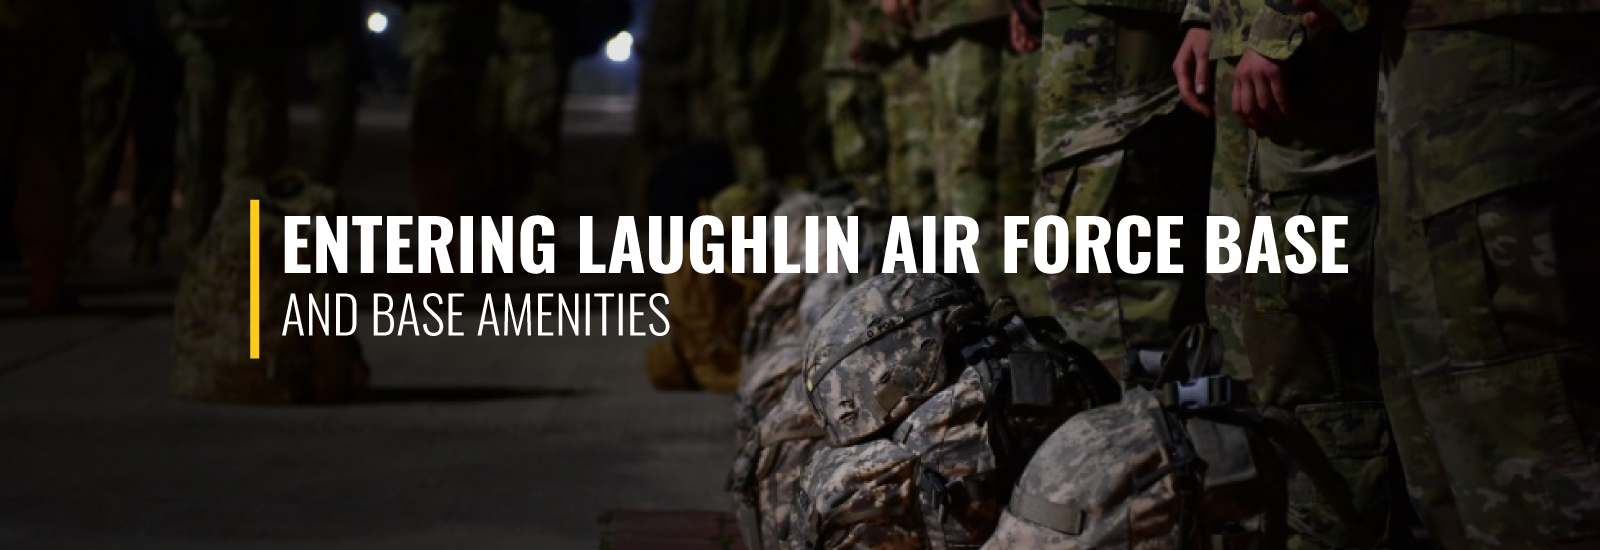 Entering Laughlin Air Force Base and Amenities